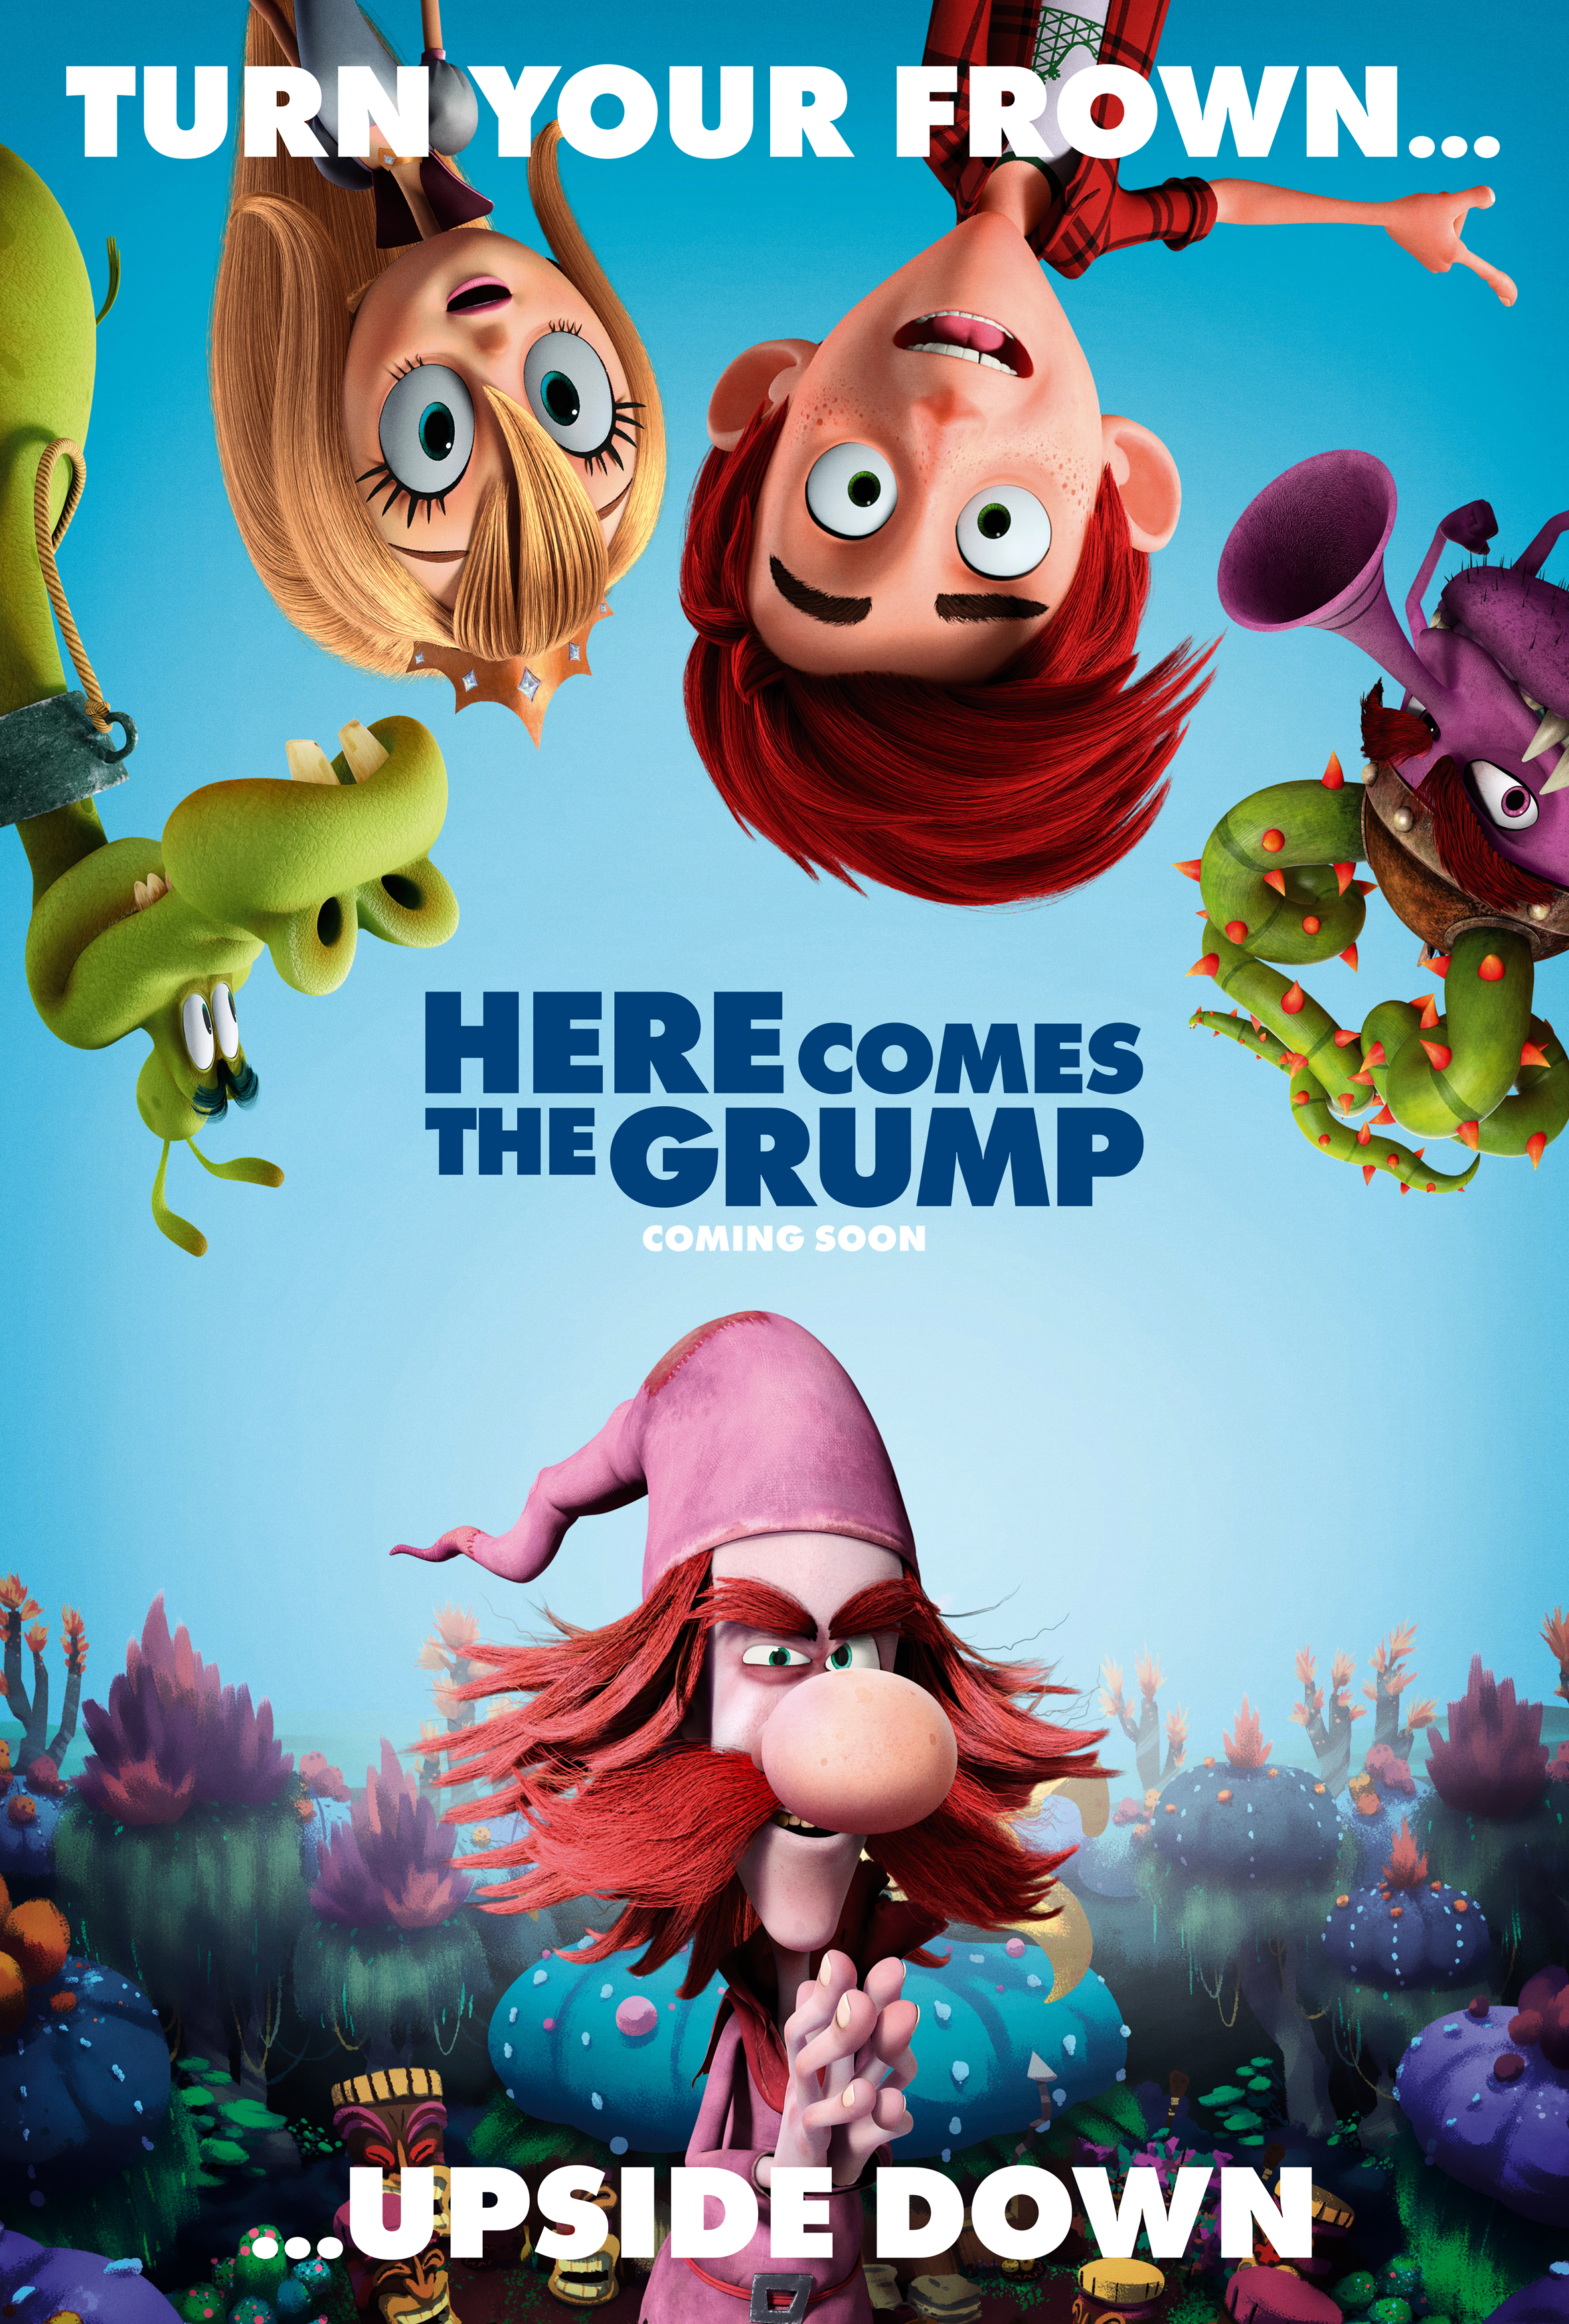 Here comes the Grump 2018 HD Full Movie Download.